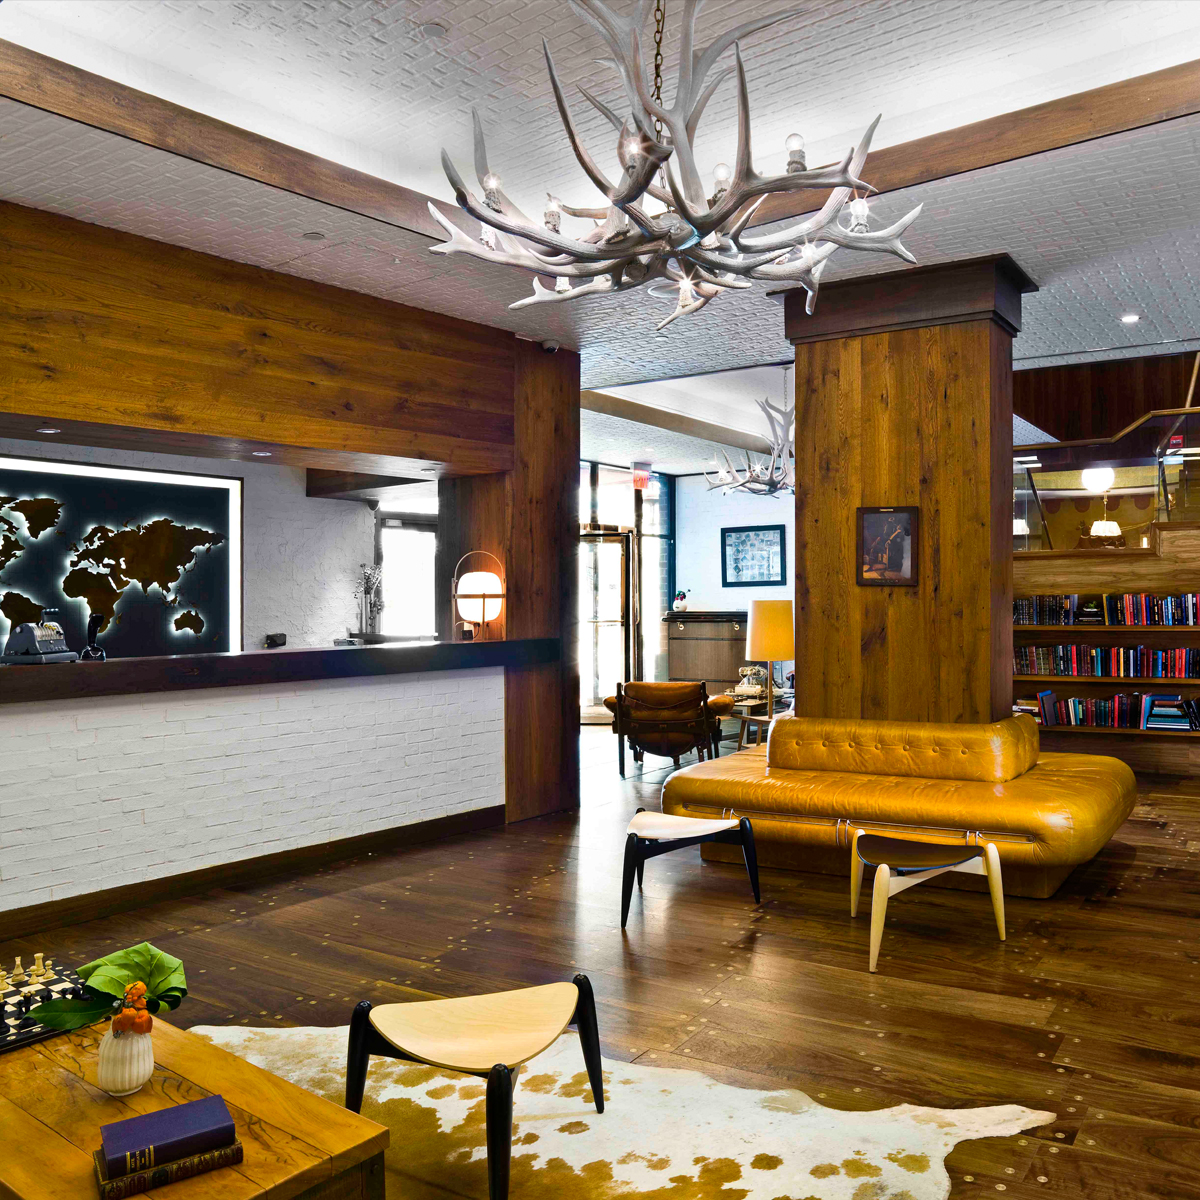 Boutique Hotels Financial District Nyc Gild Hall A Thompson Hotel Near Wall Street